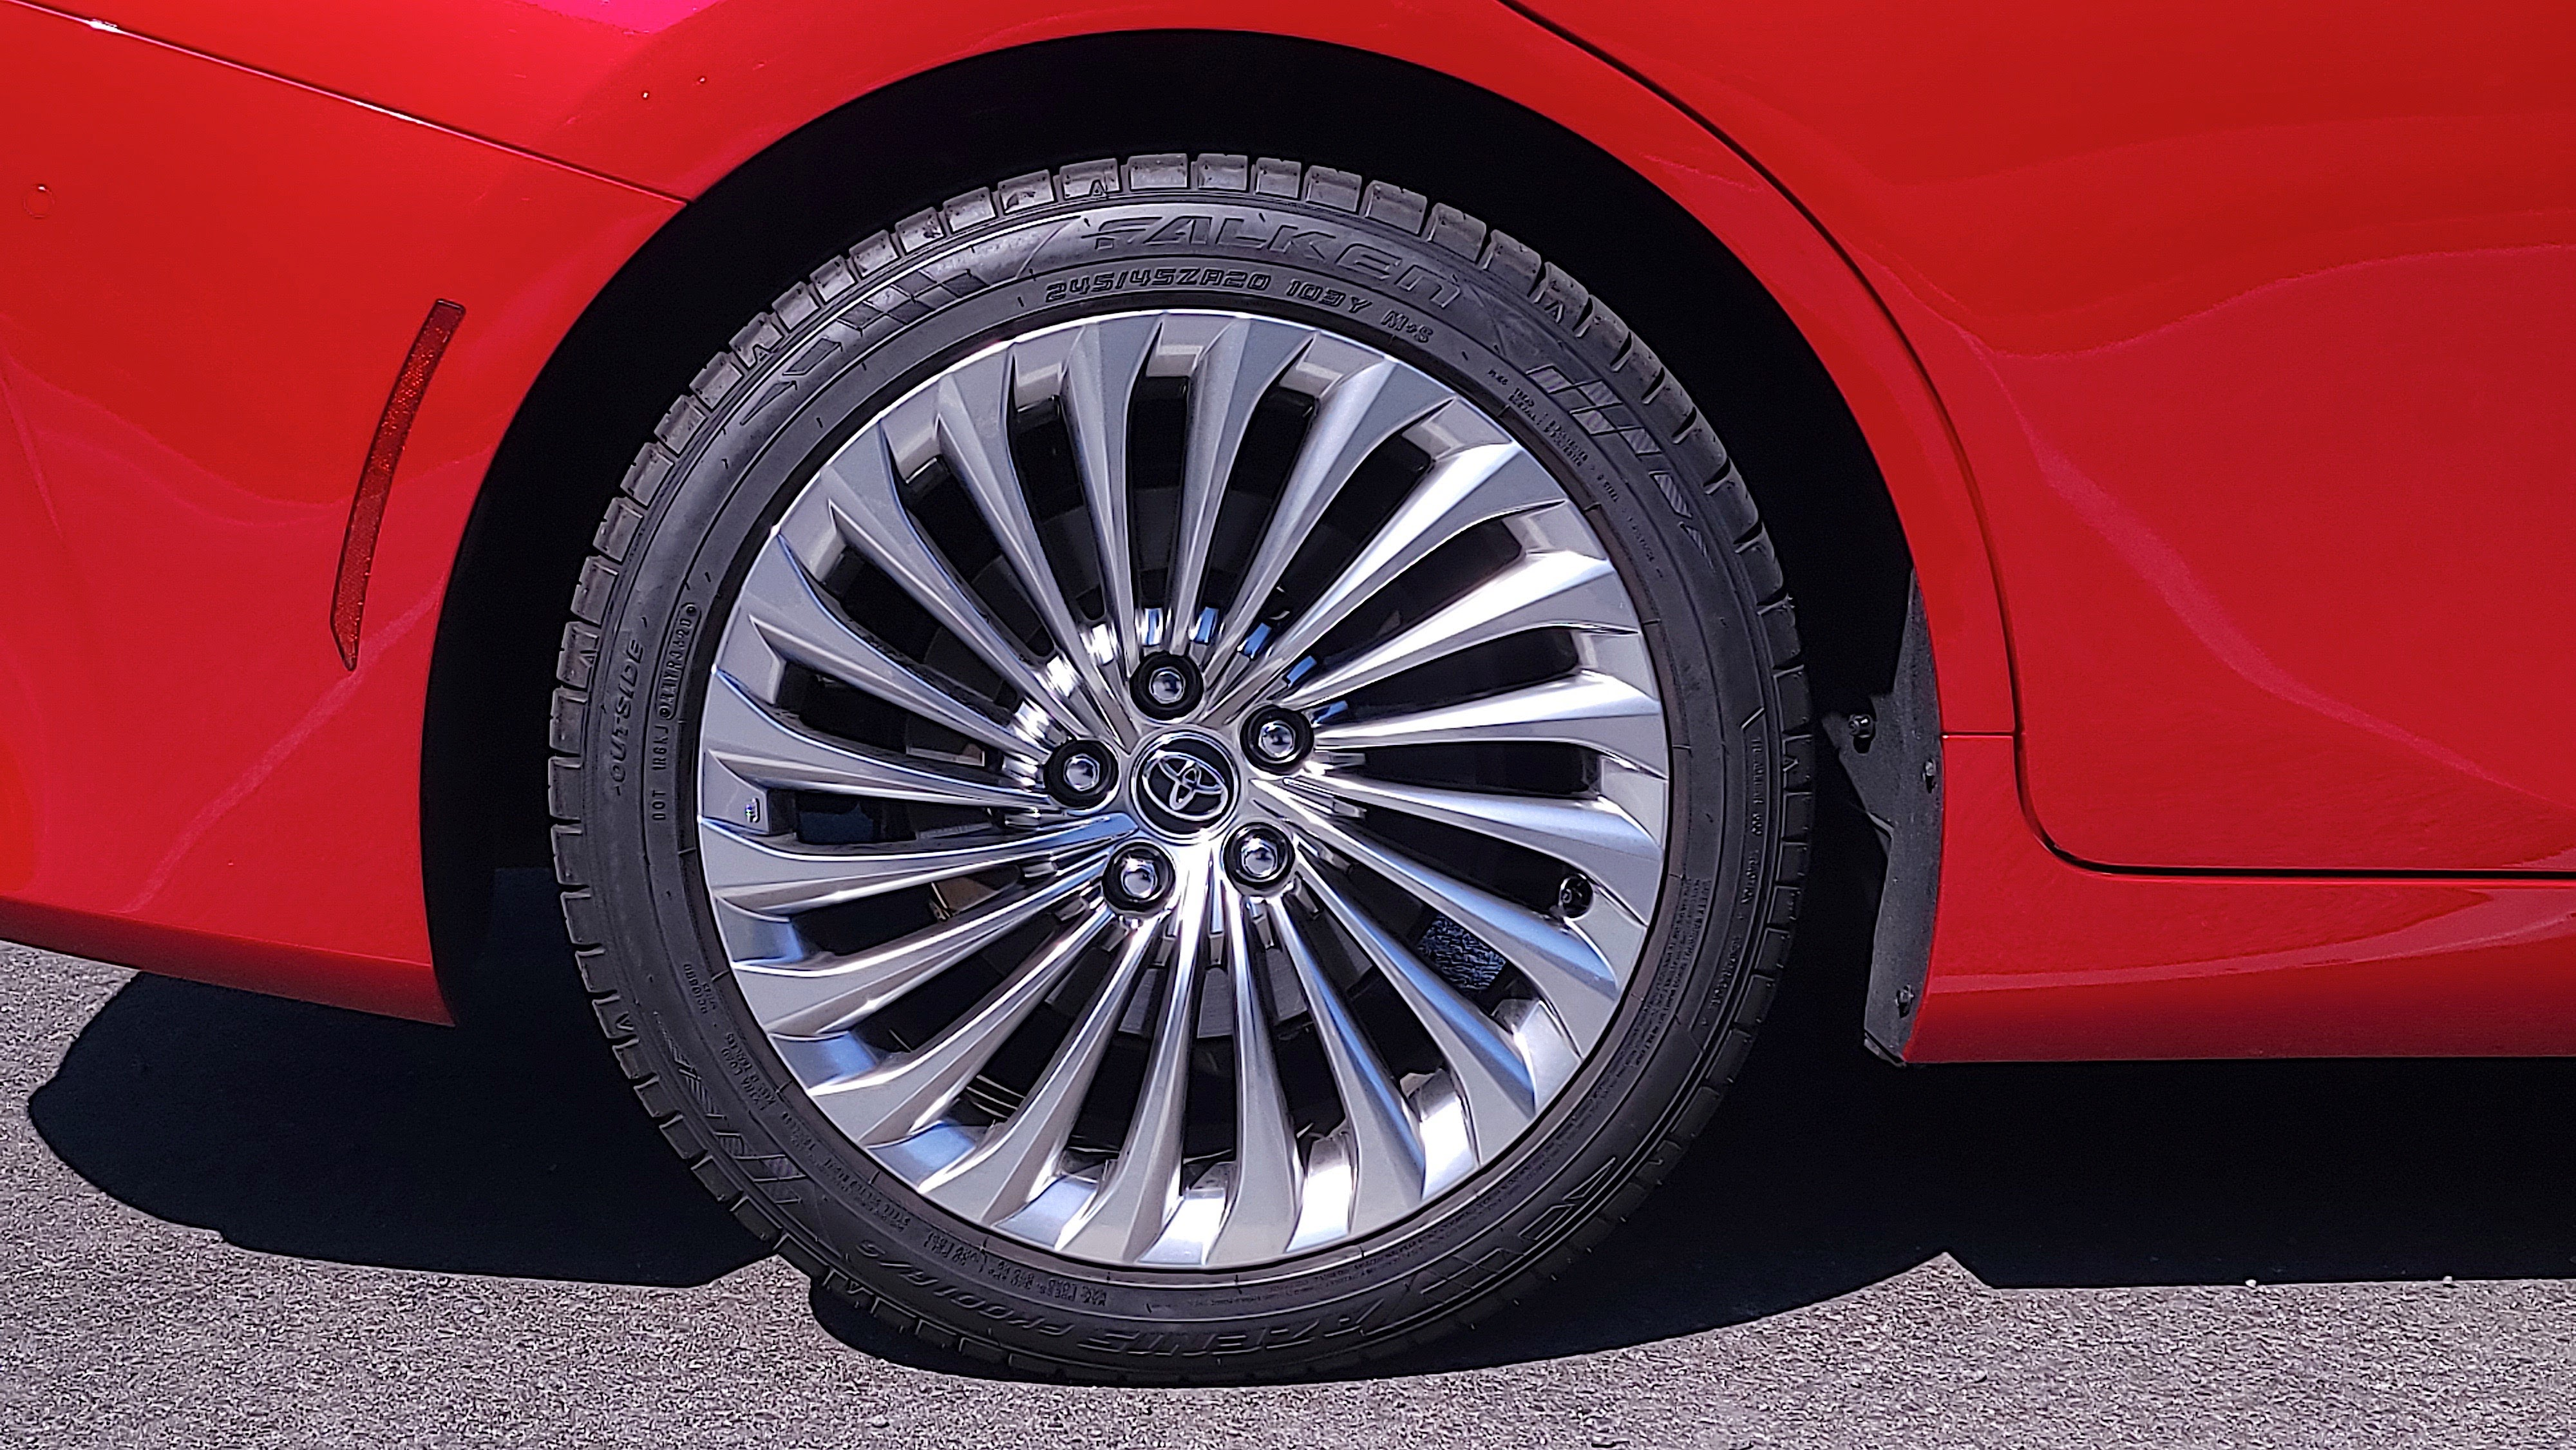 A view of one of the alloy wheels on the Mirai (2021)